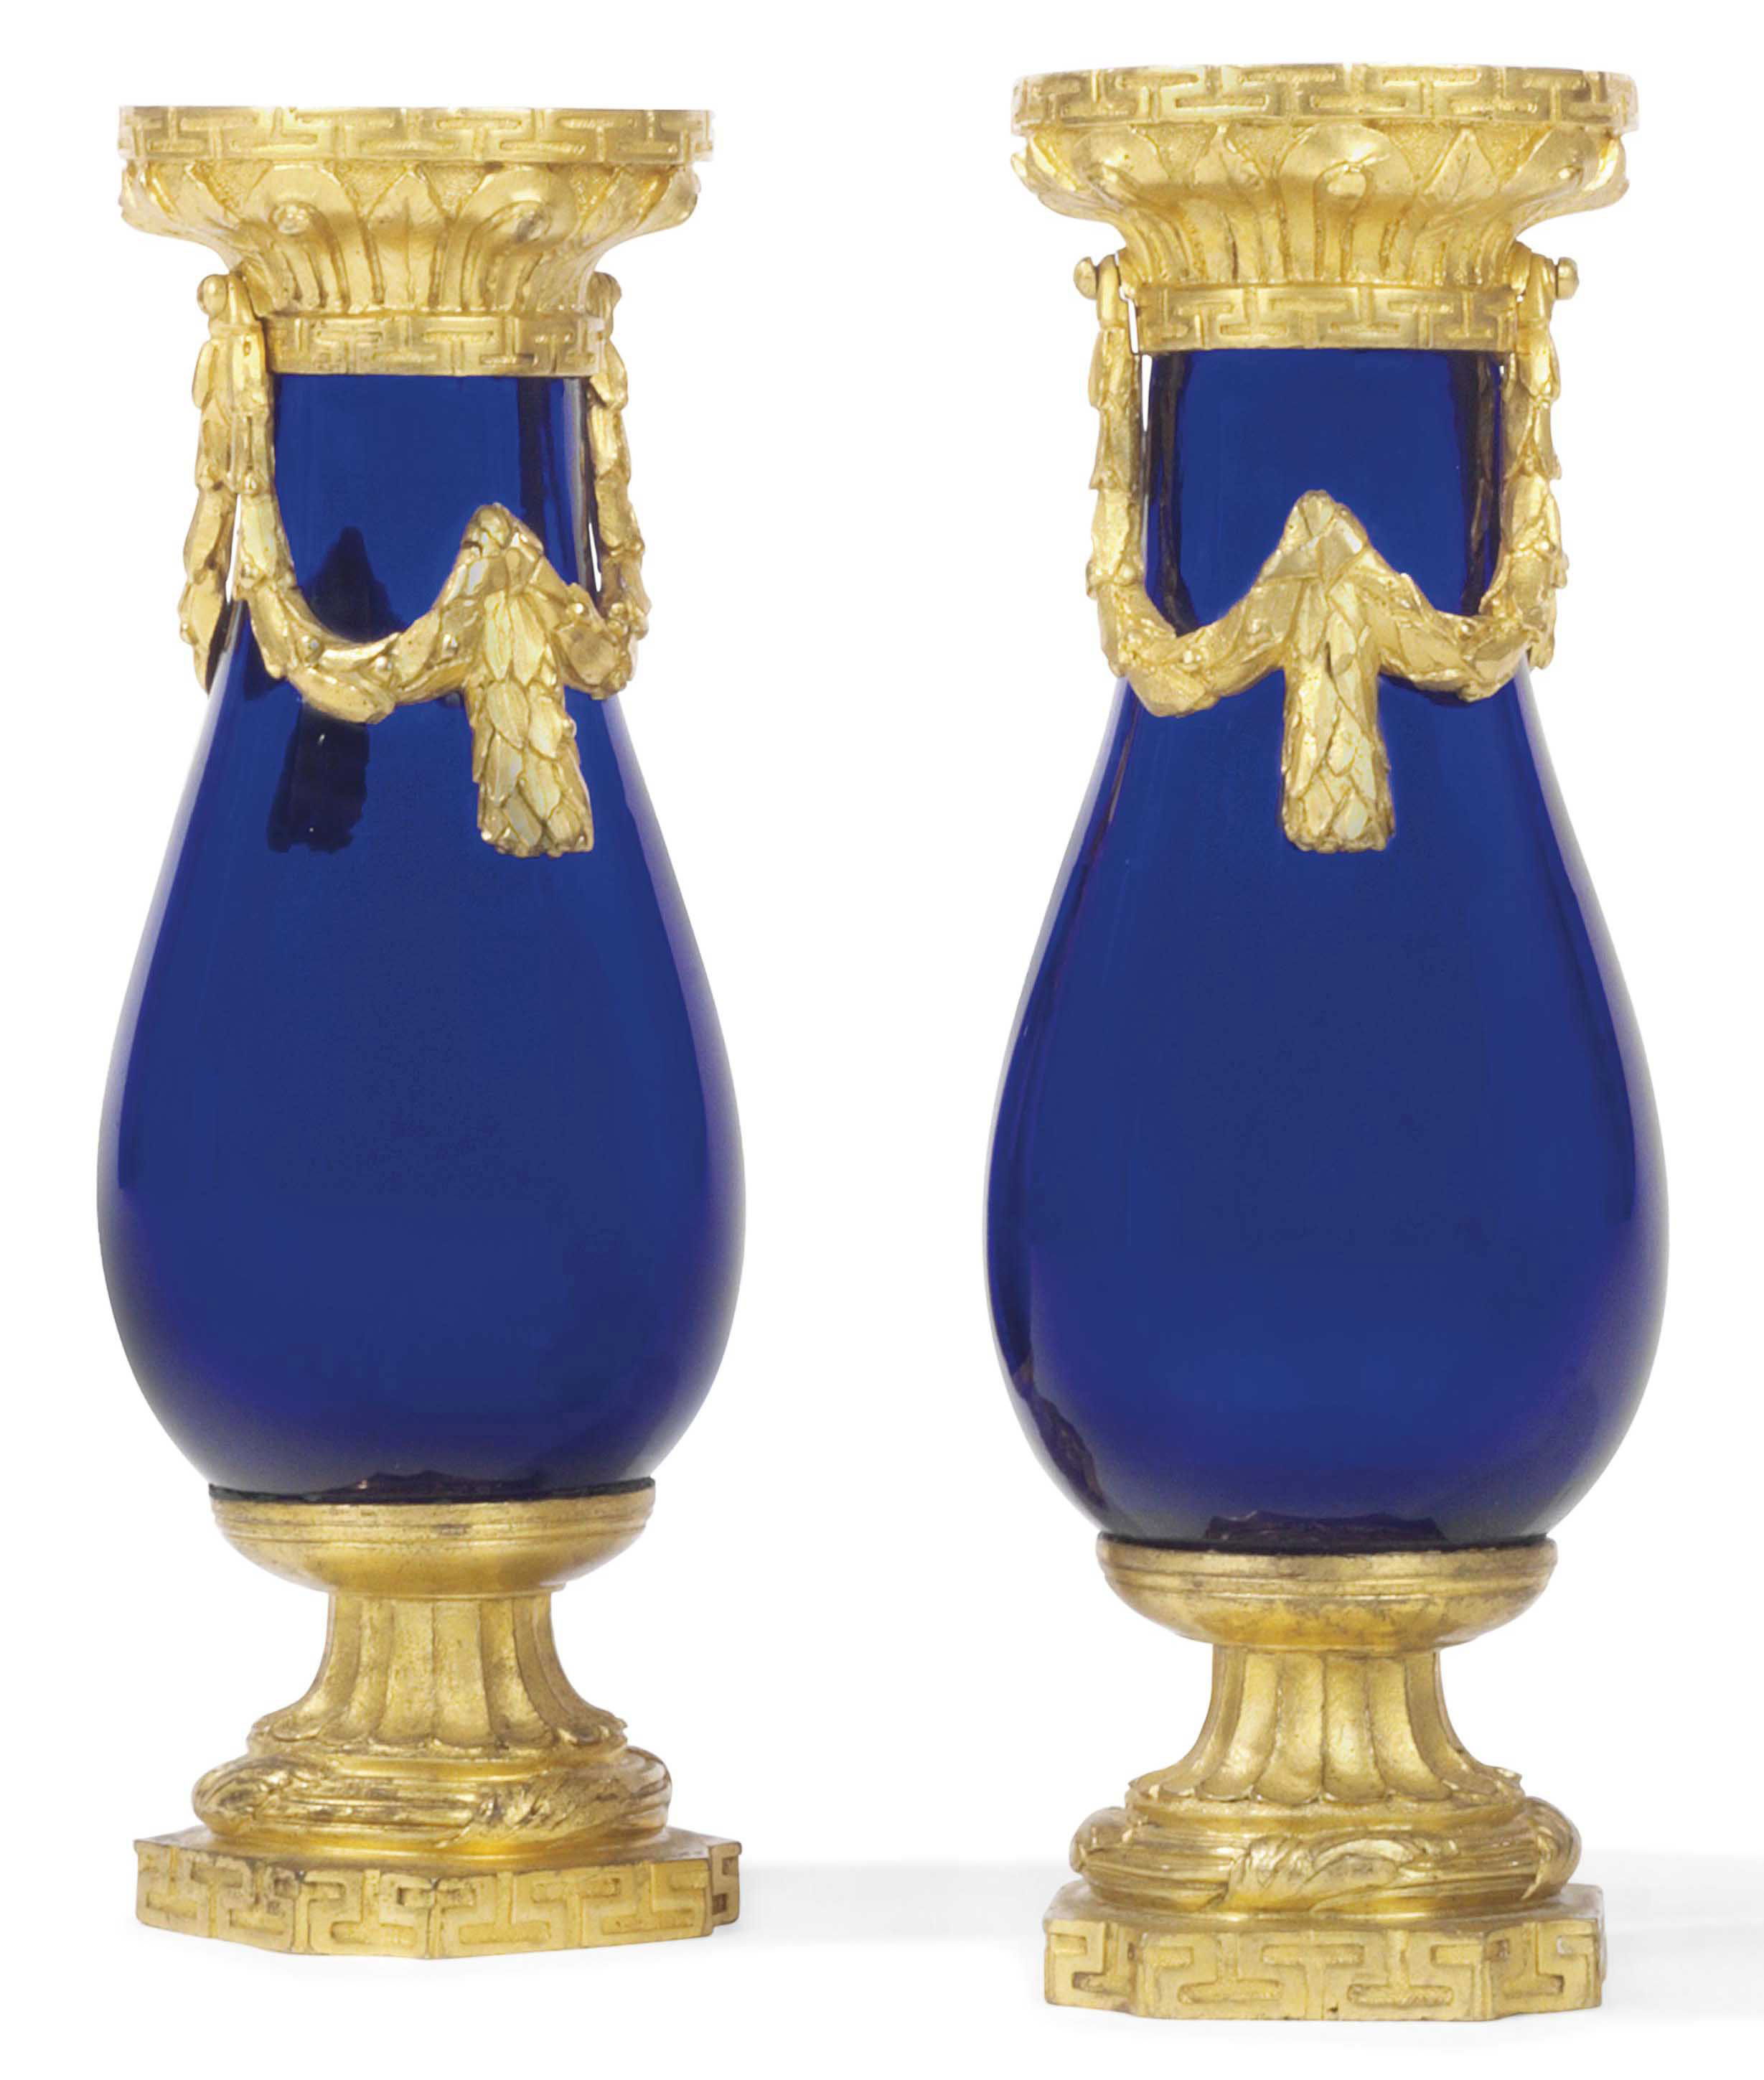 A PAIR OF LOUIS XVI ORMOLU AND